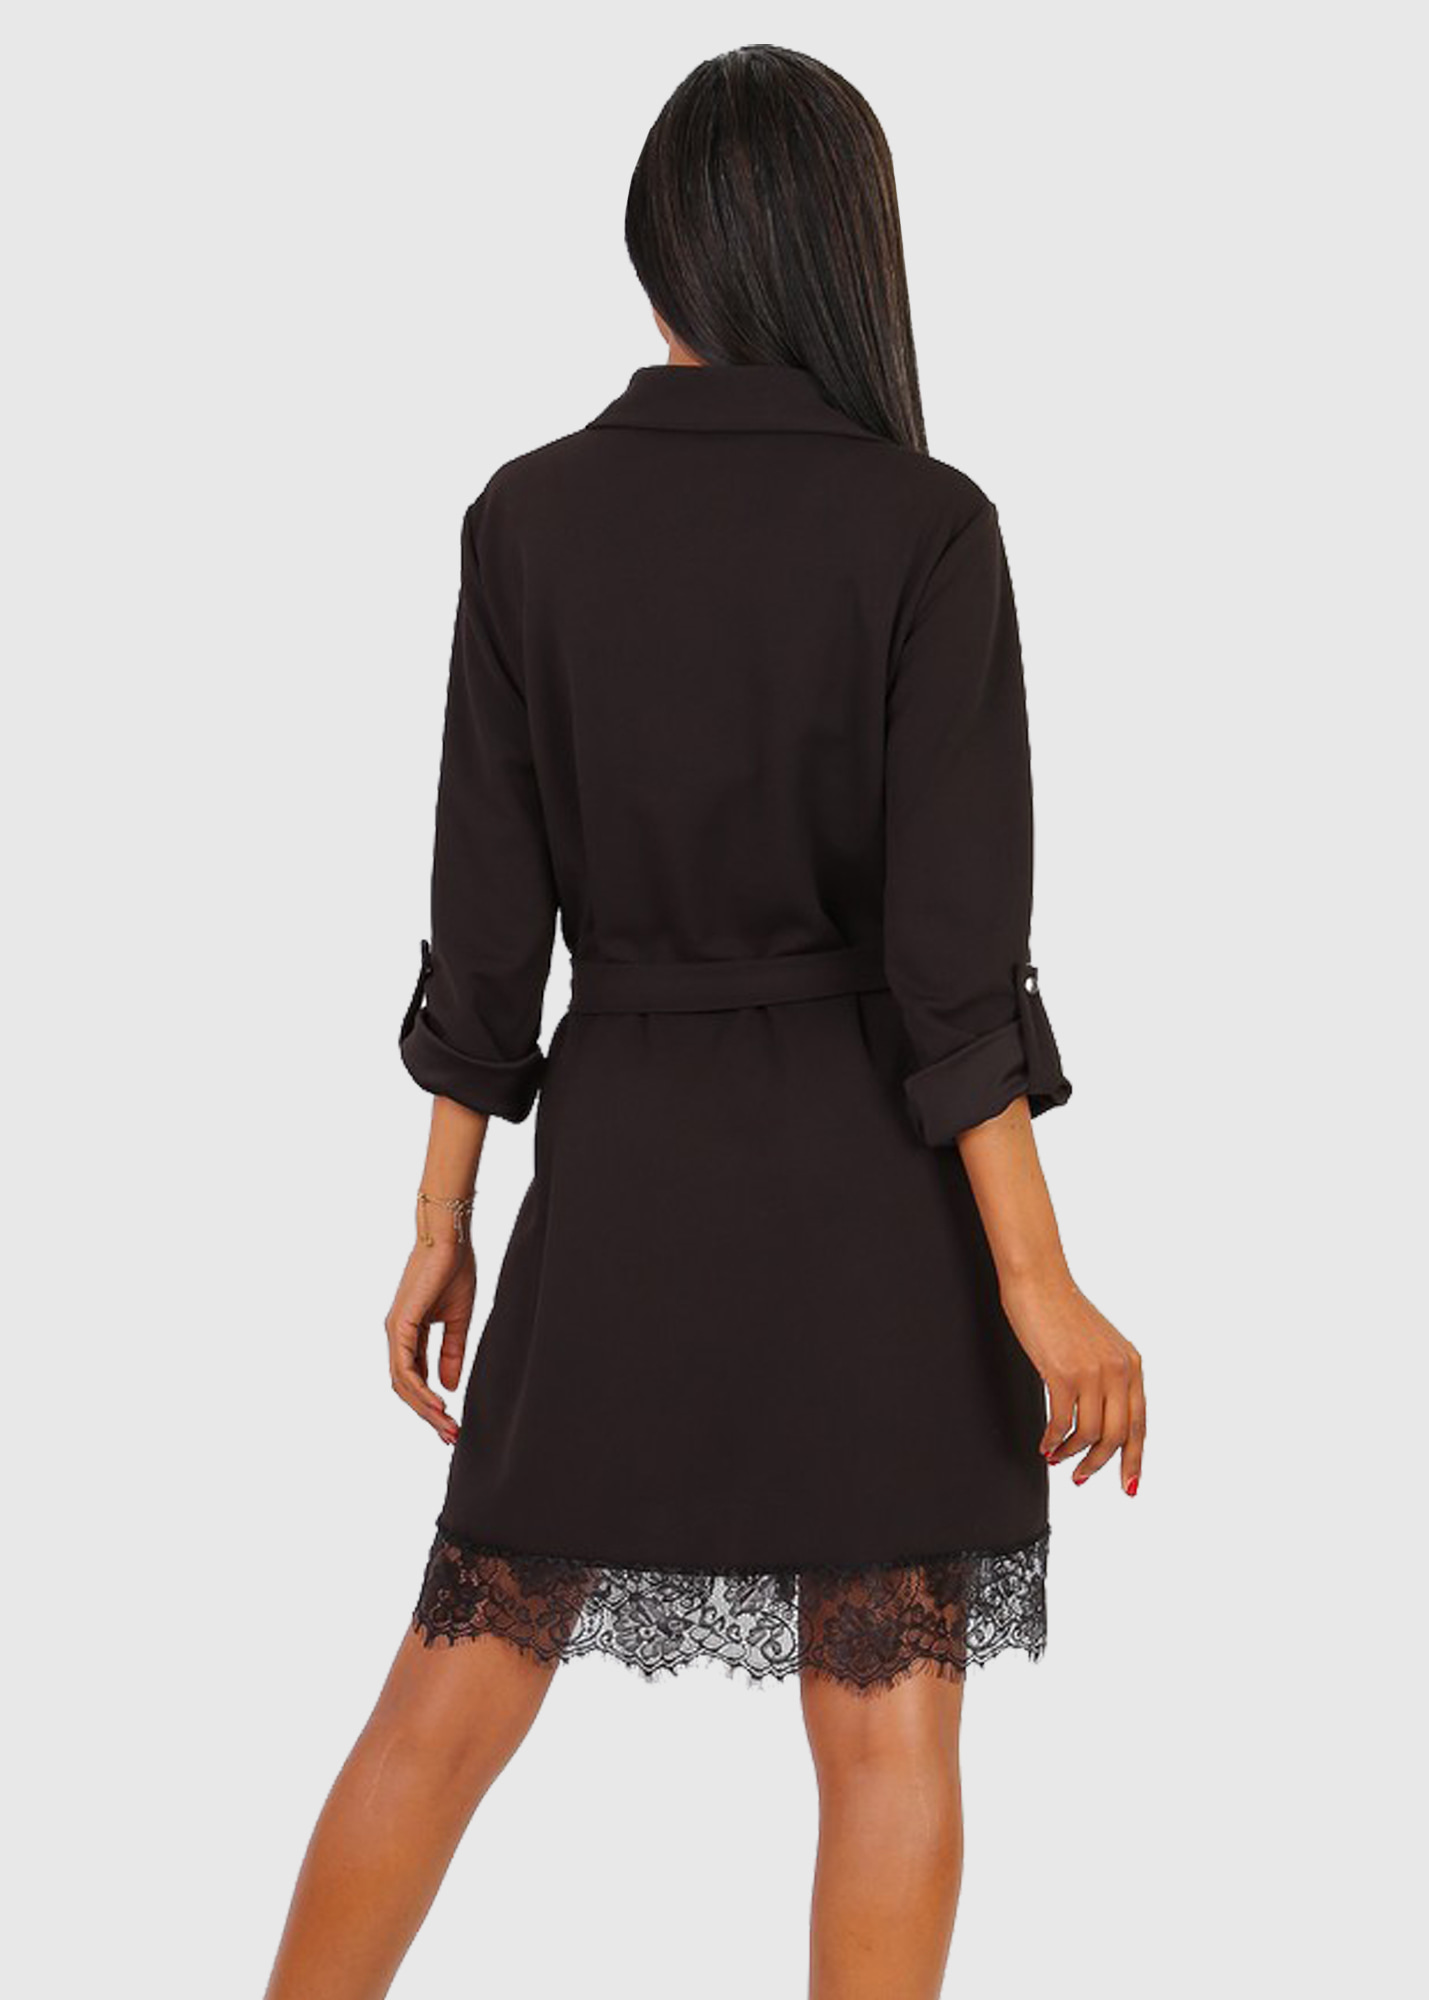 Photo №1 Nunziella italian black shirt dress